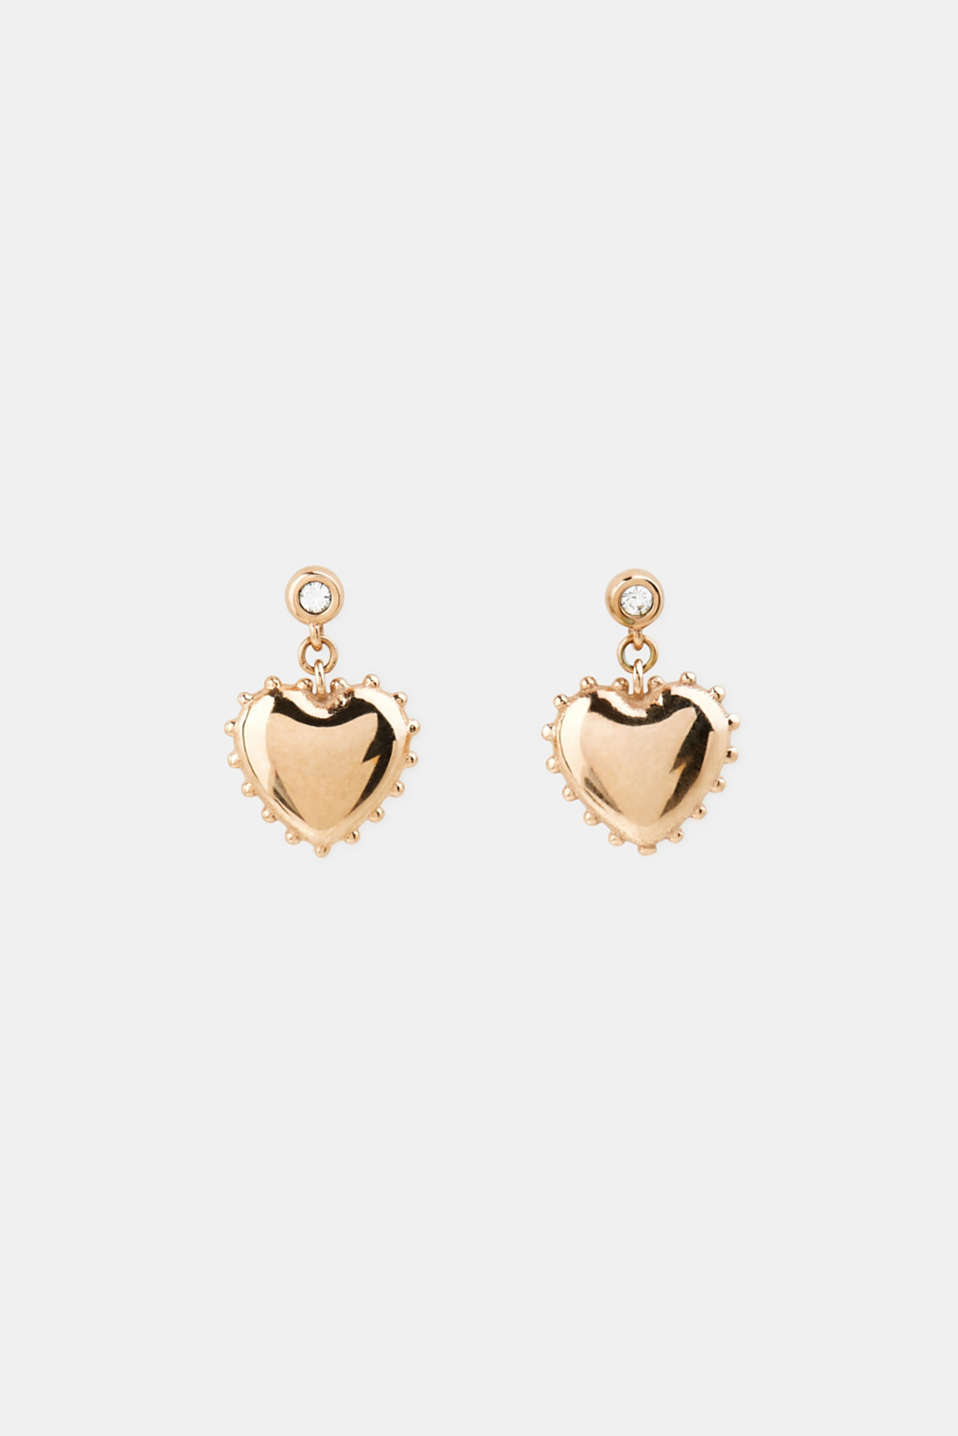 Stud earrings with heart charm, LCROSEGOLD, detail image number 0